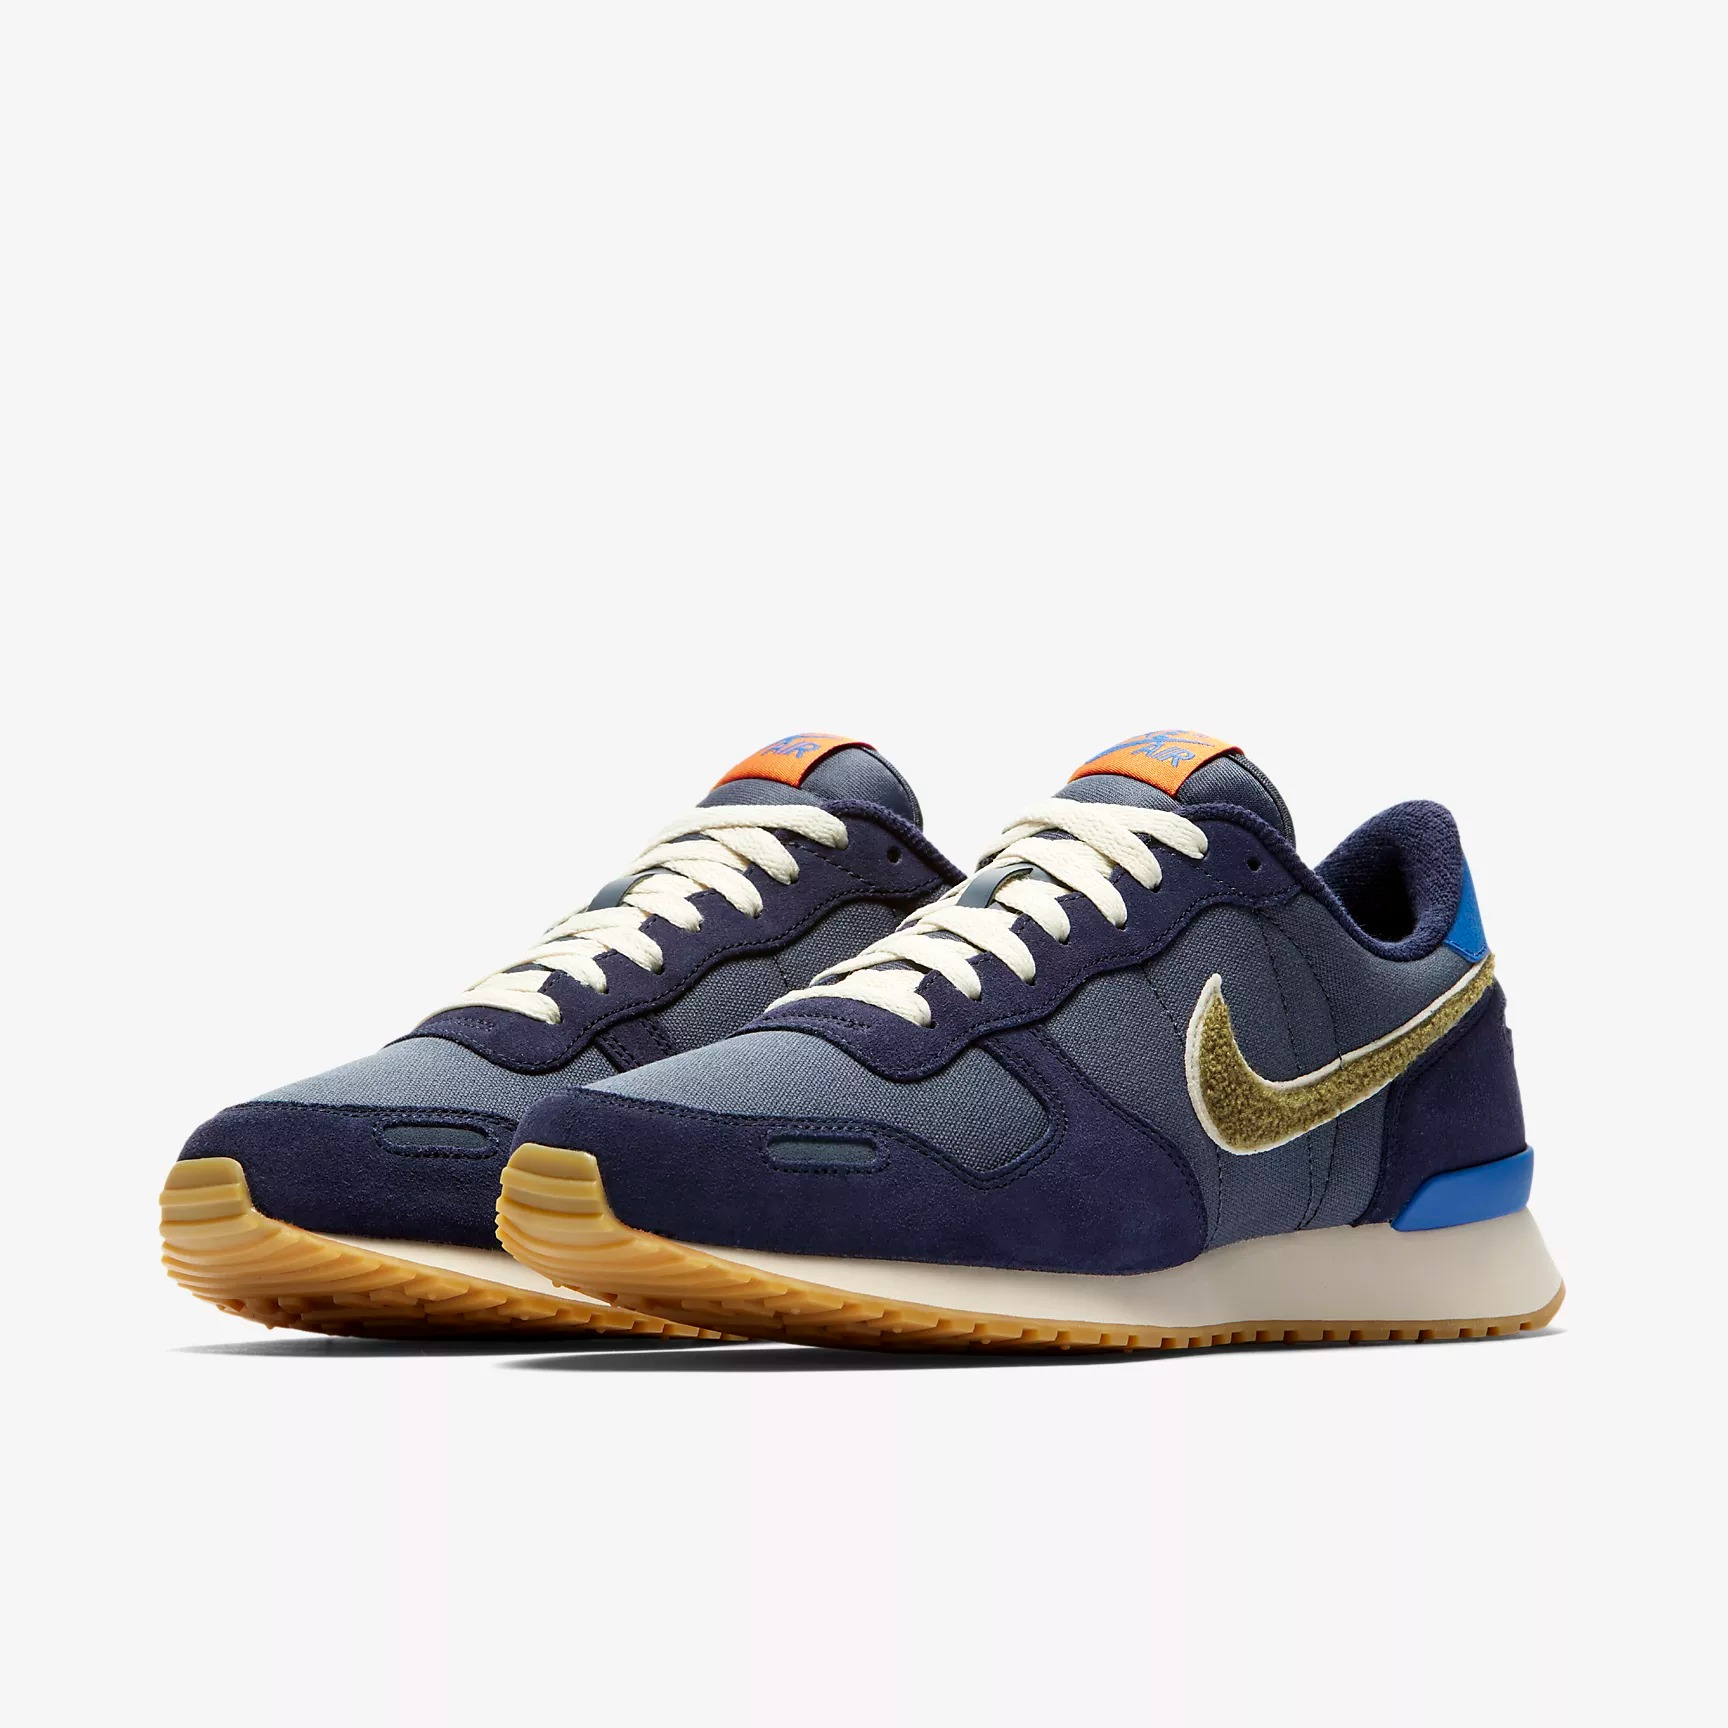 newest collection f0d33 ee7ed Nike Air Vortex SE Sneakers - SPORT SHOES Lifestyle Shoes  Sneakers -  Superfanas.lt